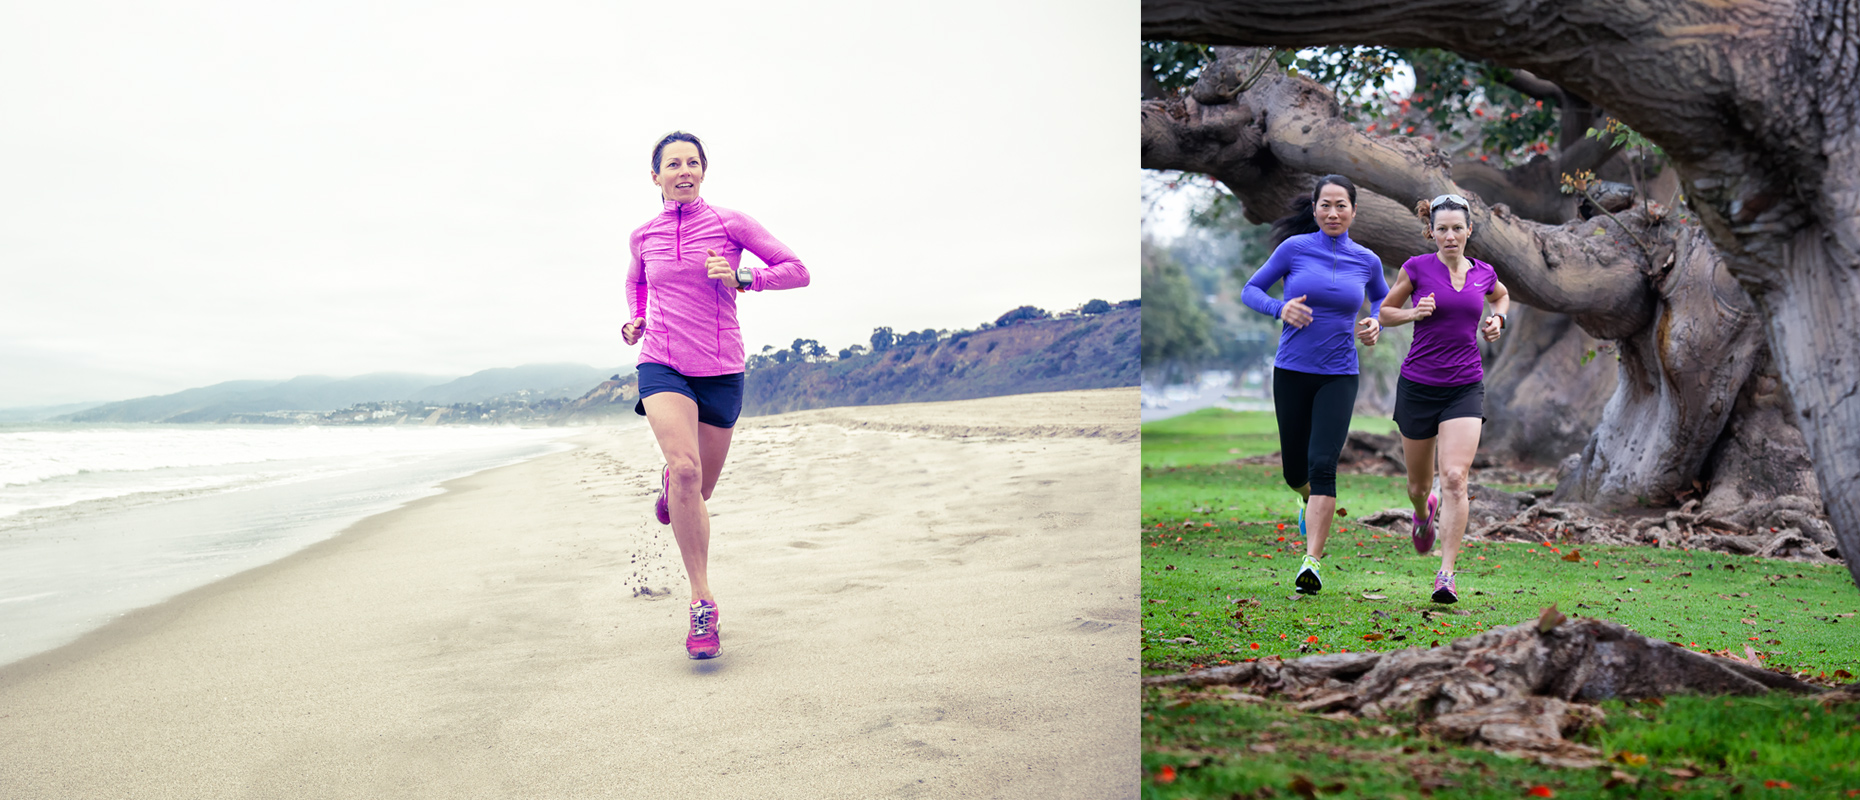 Two women running in park and on the beach